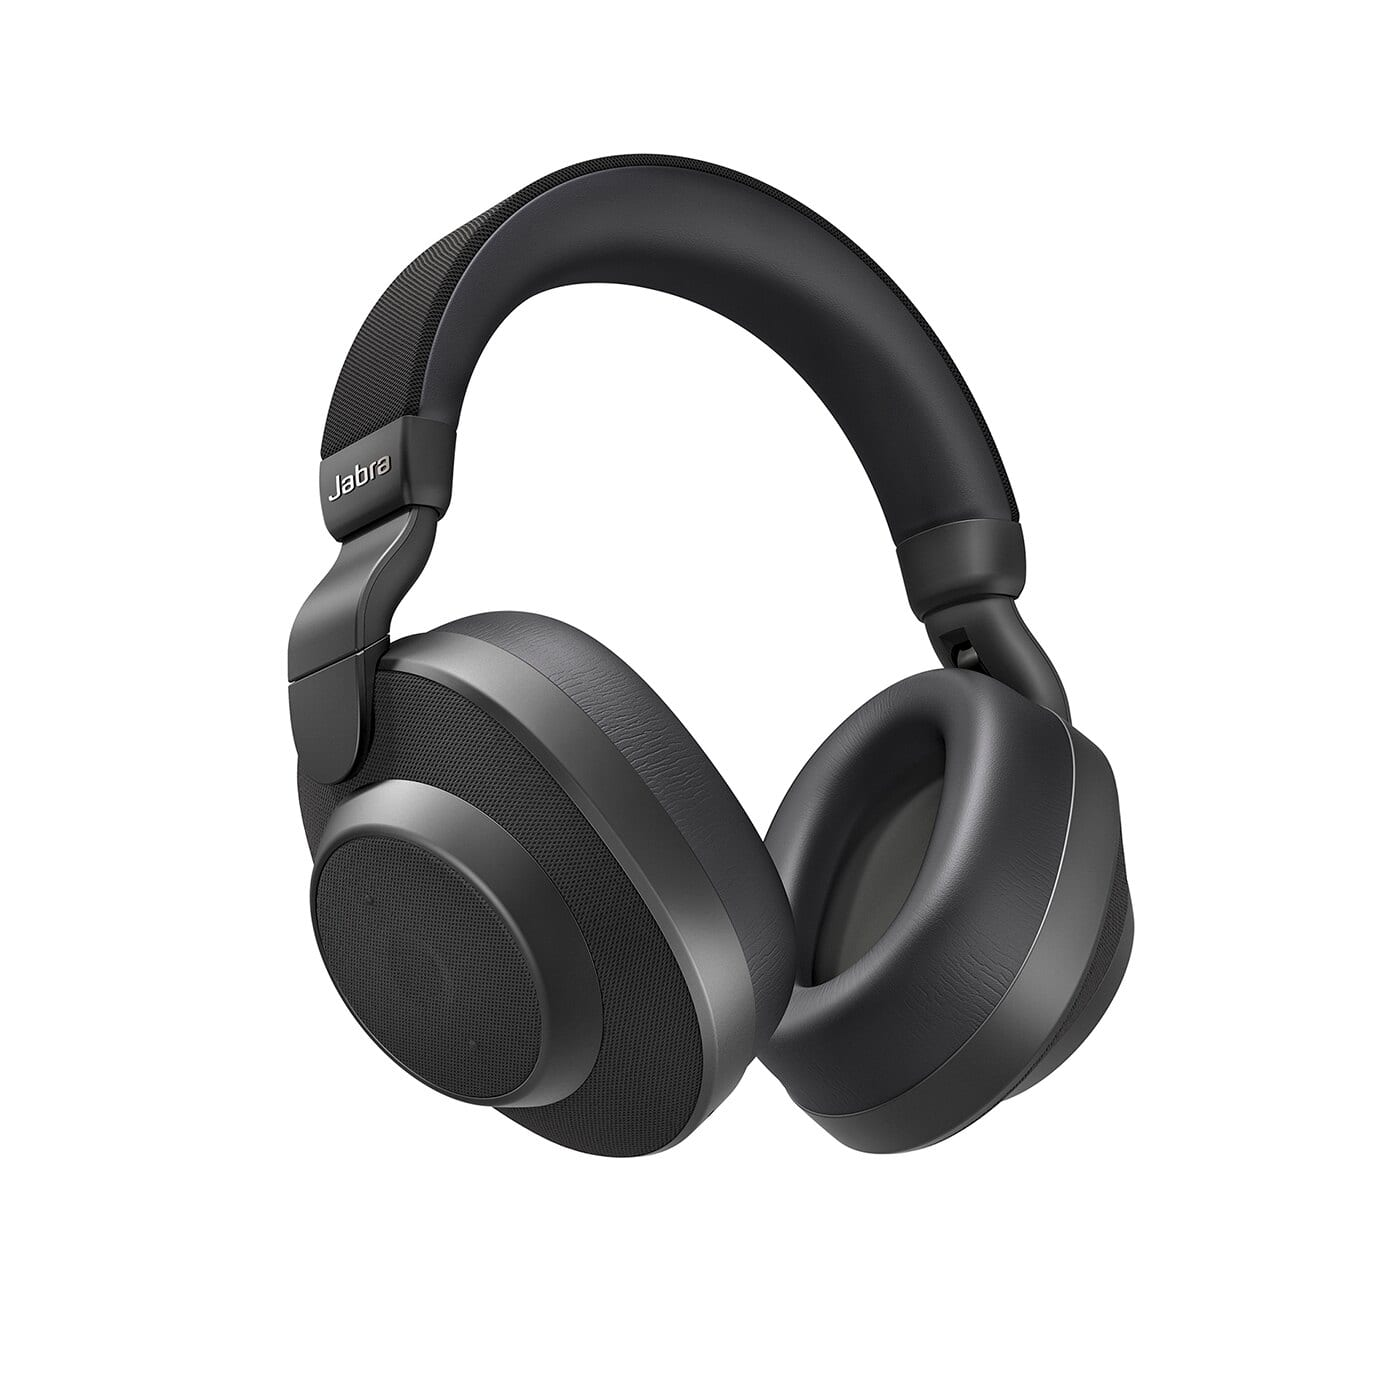 Jabra Elite 85h  Active Noise Cancelling Headphones (mfr refurbished) $139 + 11% Rakuten Pts + Free S/H $139.02